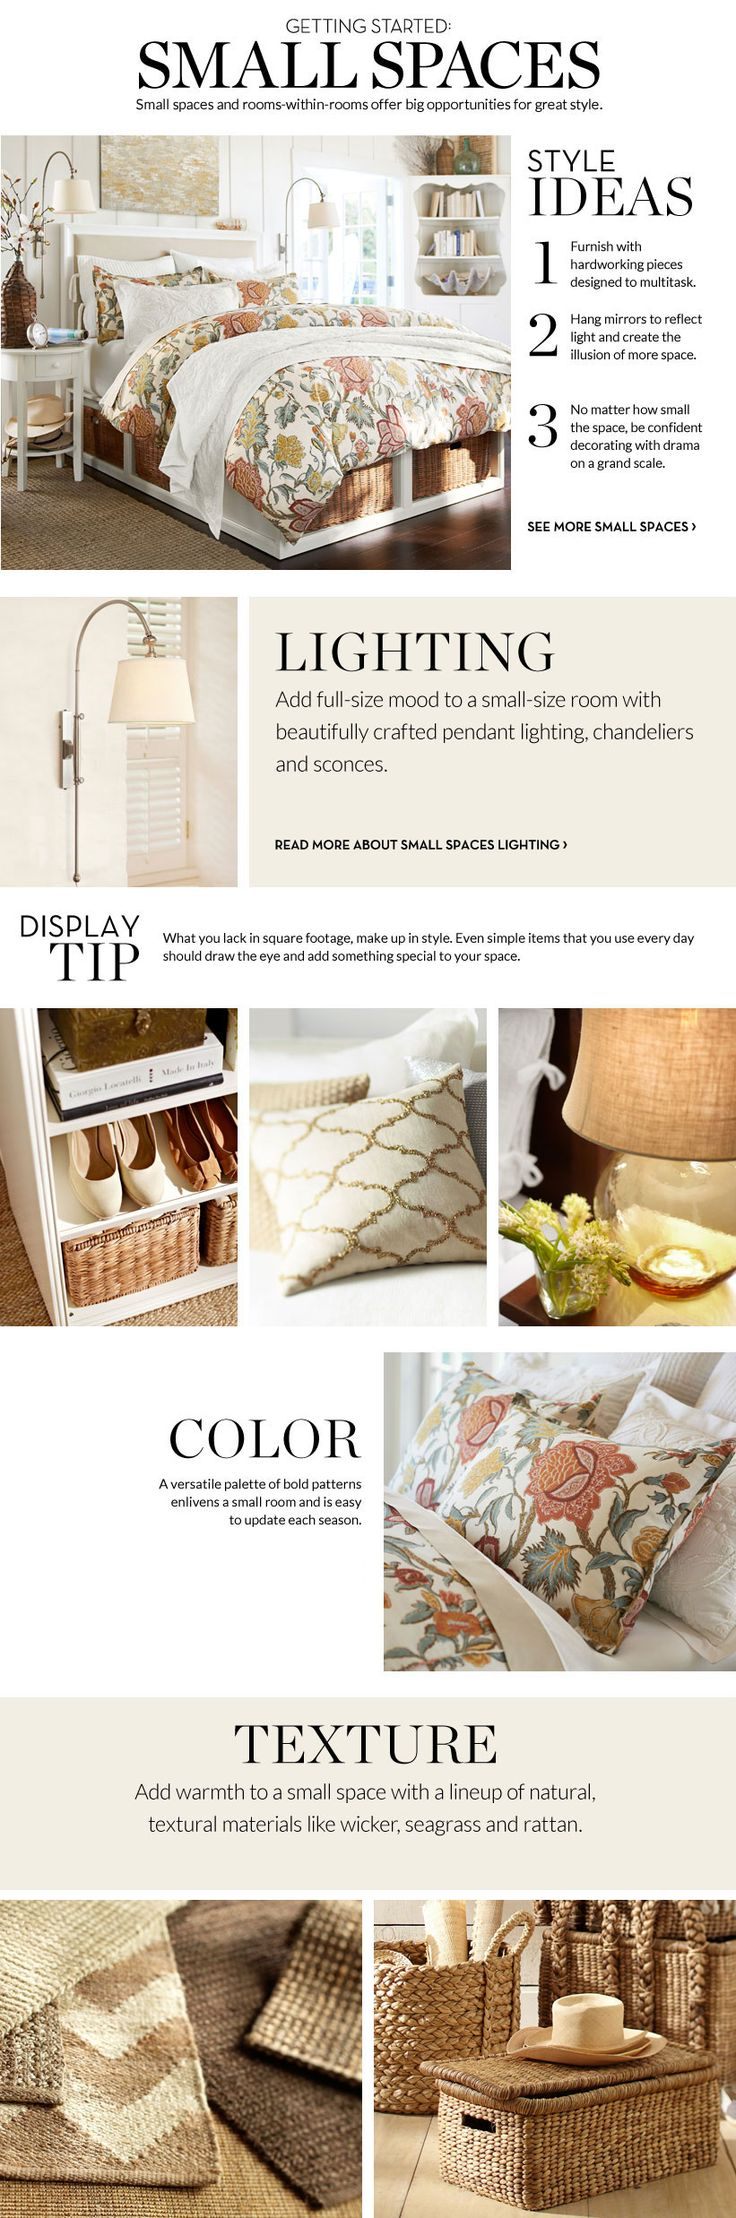 small spaces pottery barn apartments smallspaces